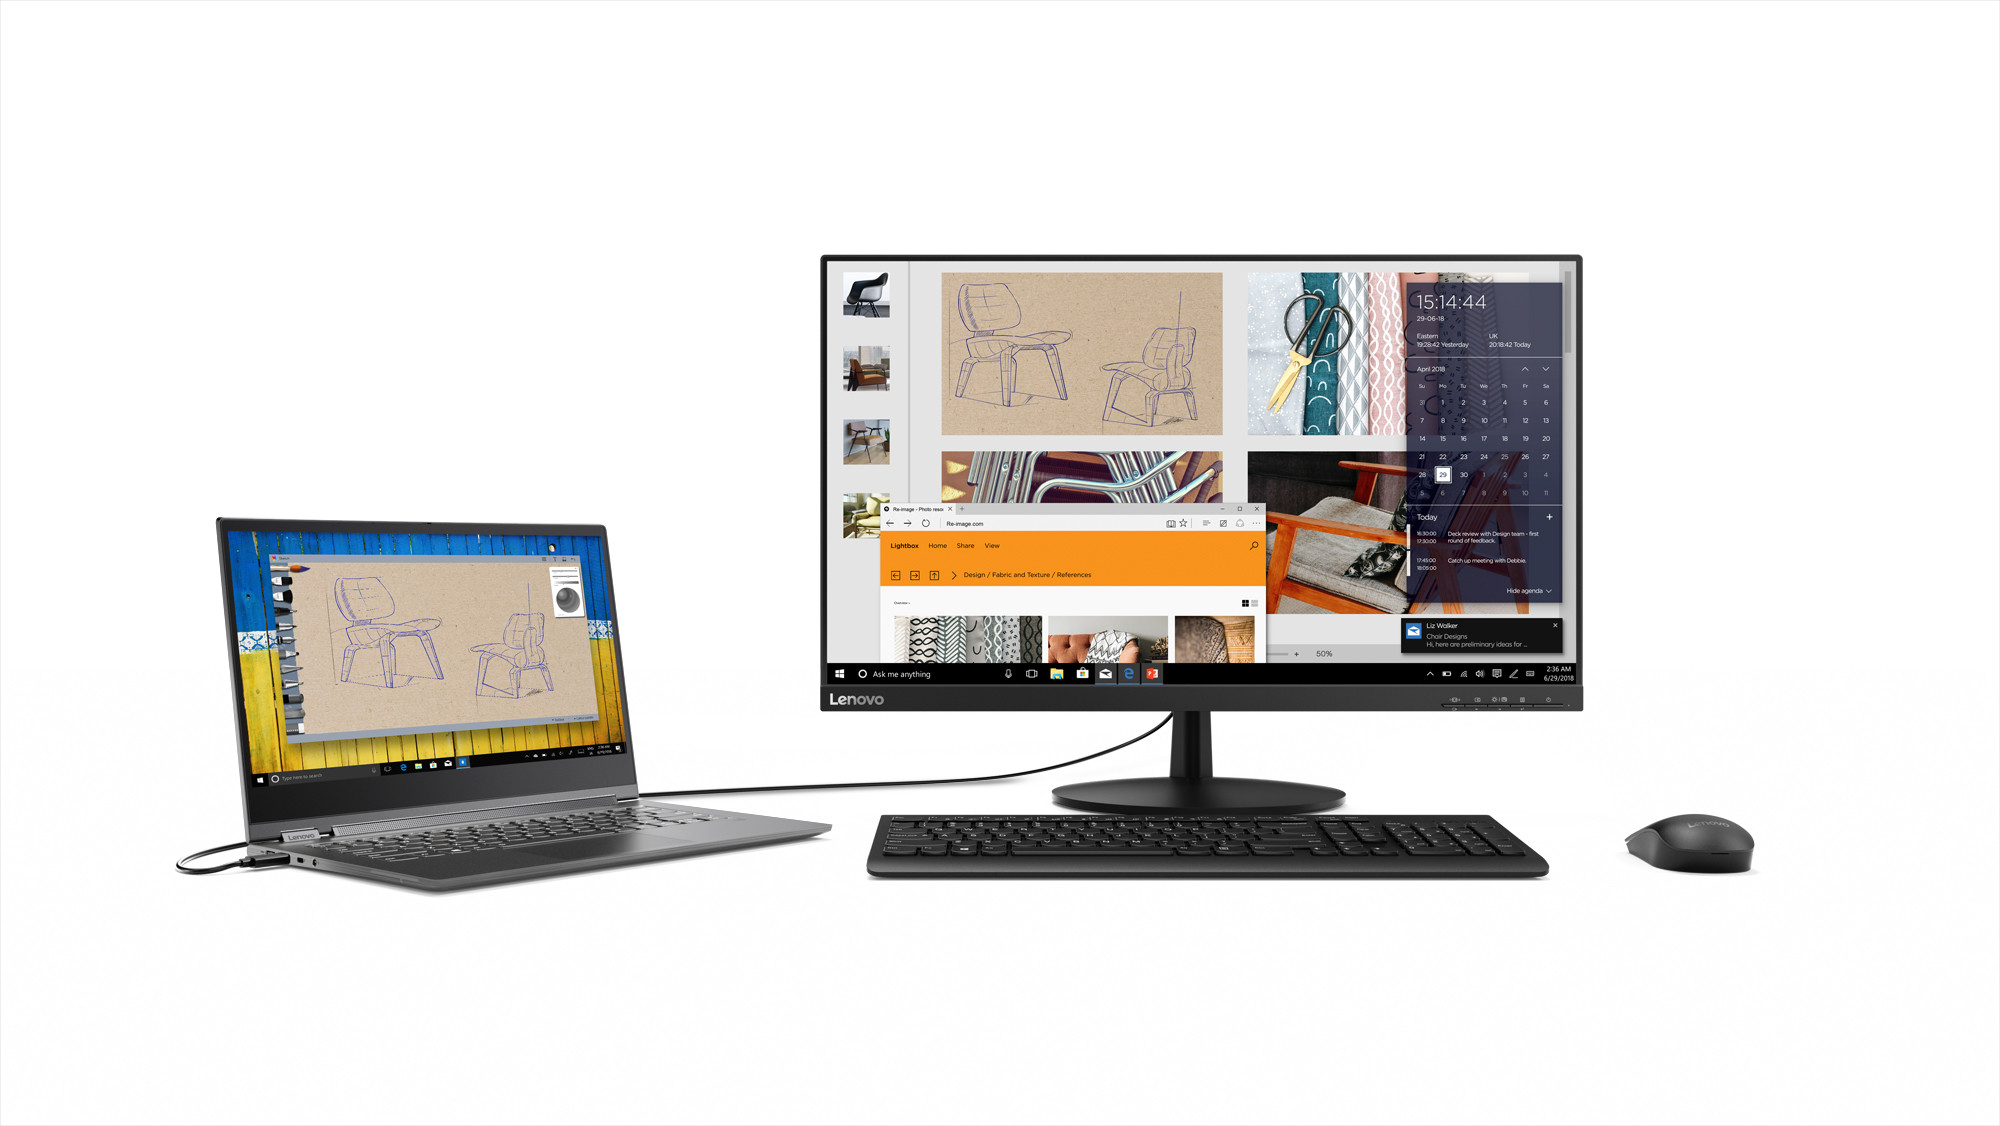 https://www.lenovo.com/es/es/accessories-and-monitors/monitors/professional/P44w-10A18434LP043-4inch-Monitor-HDMI/p/61D5RAT1EU